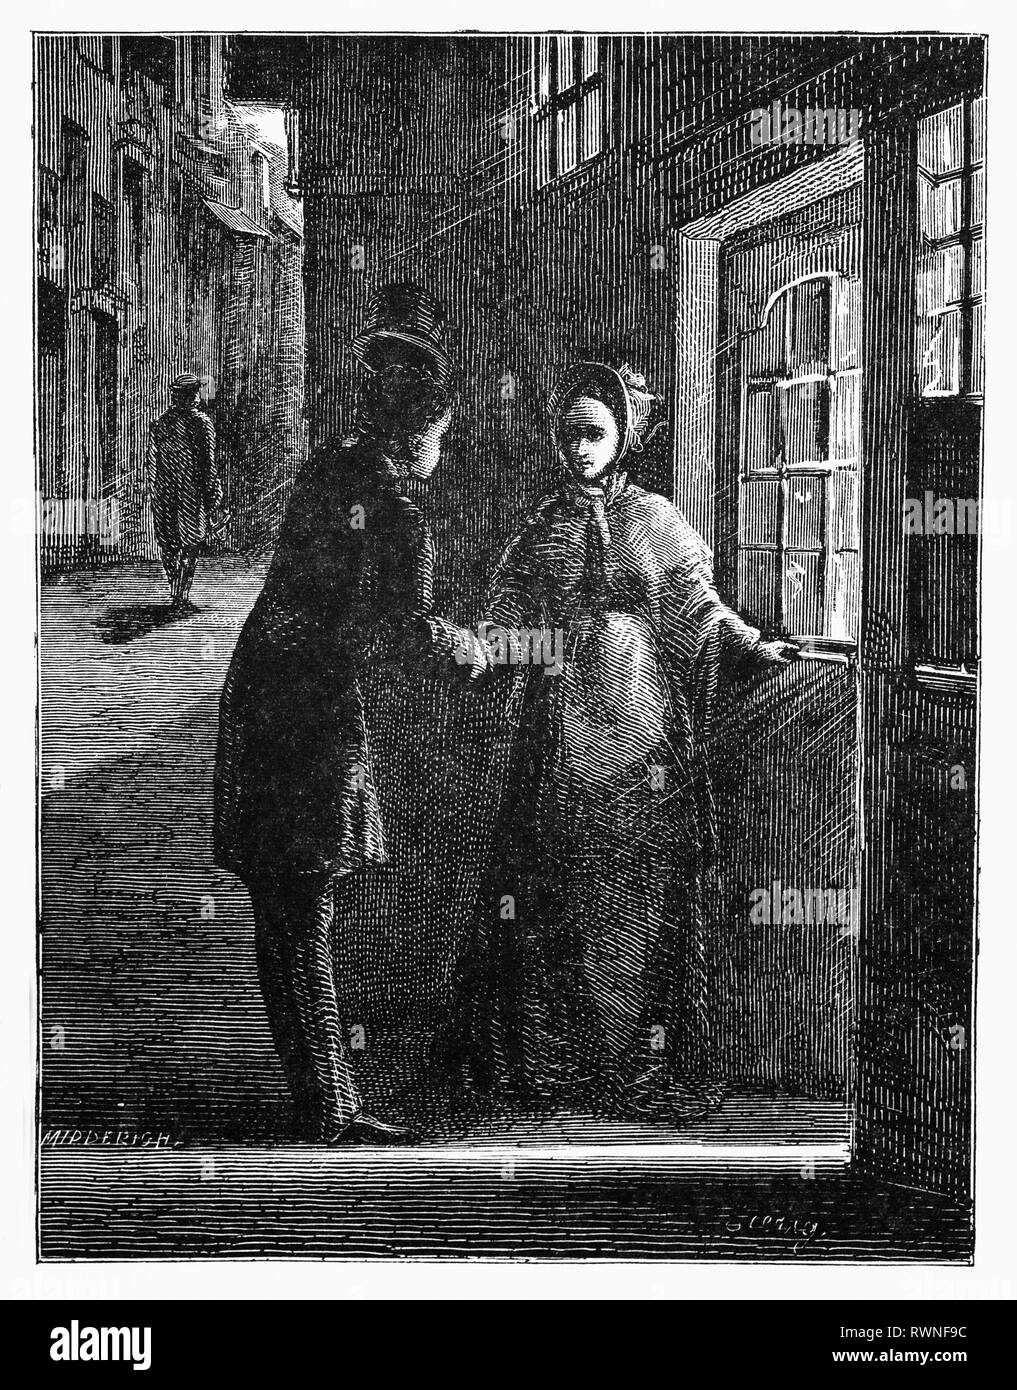 Hildebrand escorts a young woman, Suzette Noire, to her home in Haarlem, the Netherlands. From the Camera Obscura, a collection of Dutch humorous-realistic essays, stories and sketches in which Hildebrand, the author, takes an ironic look at the behavior of the 'well-to-do', finding  them bourgeois and without a good word for them. - Stock Image